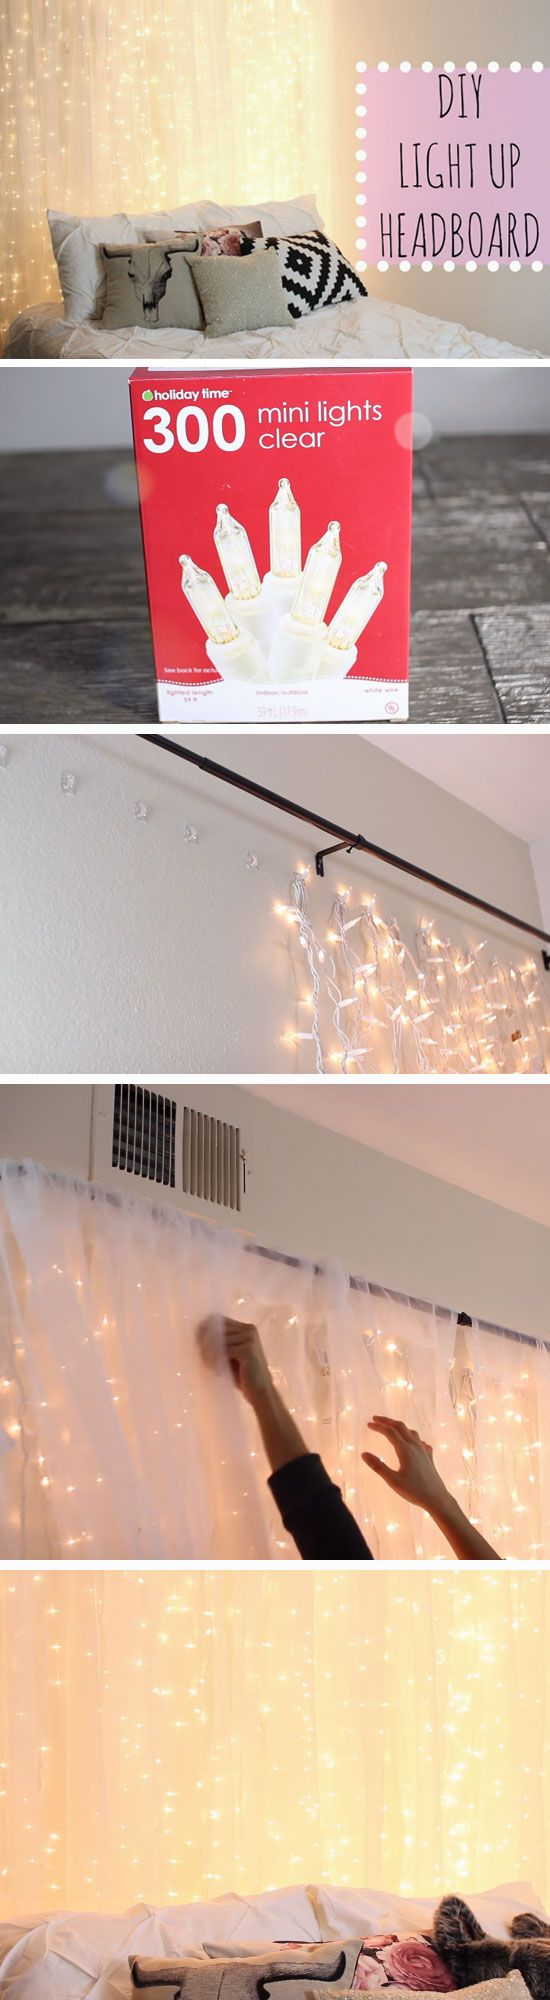 best diy home and living images on pinterest great ideas home